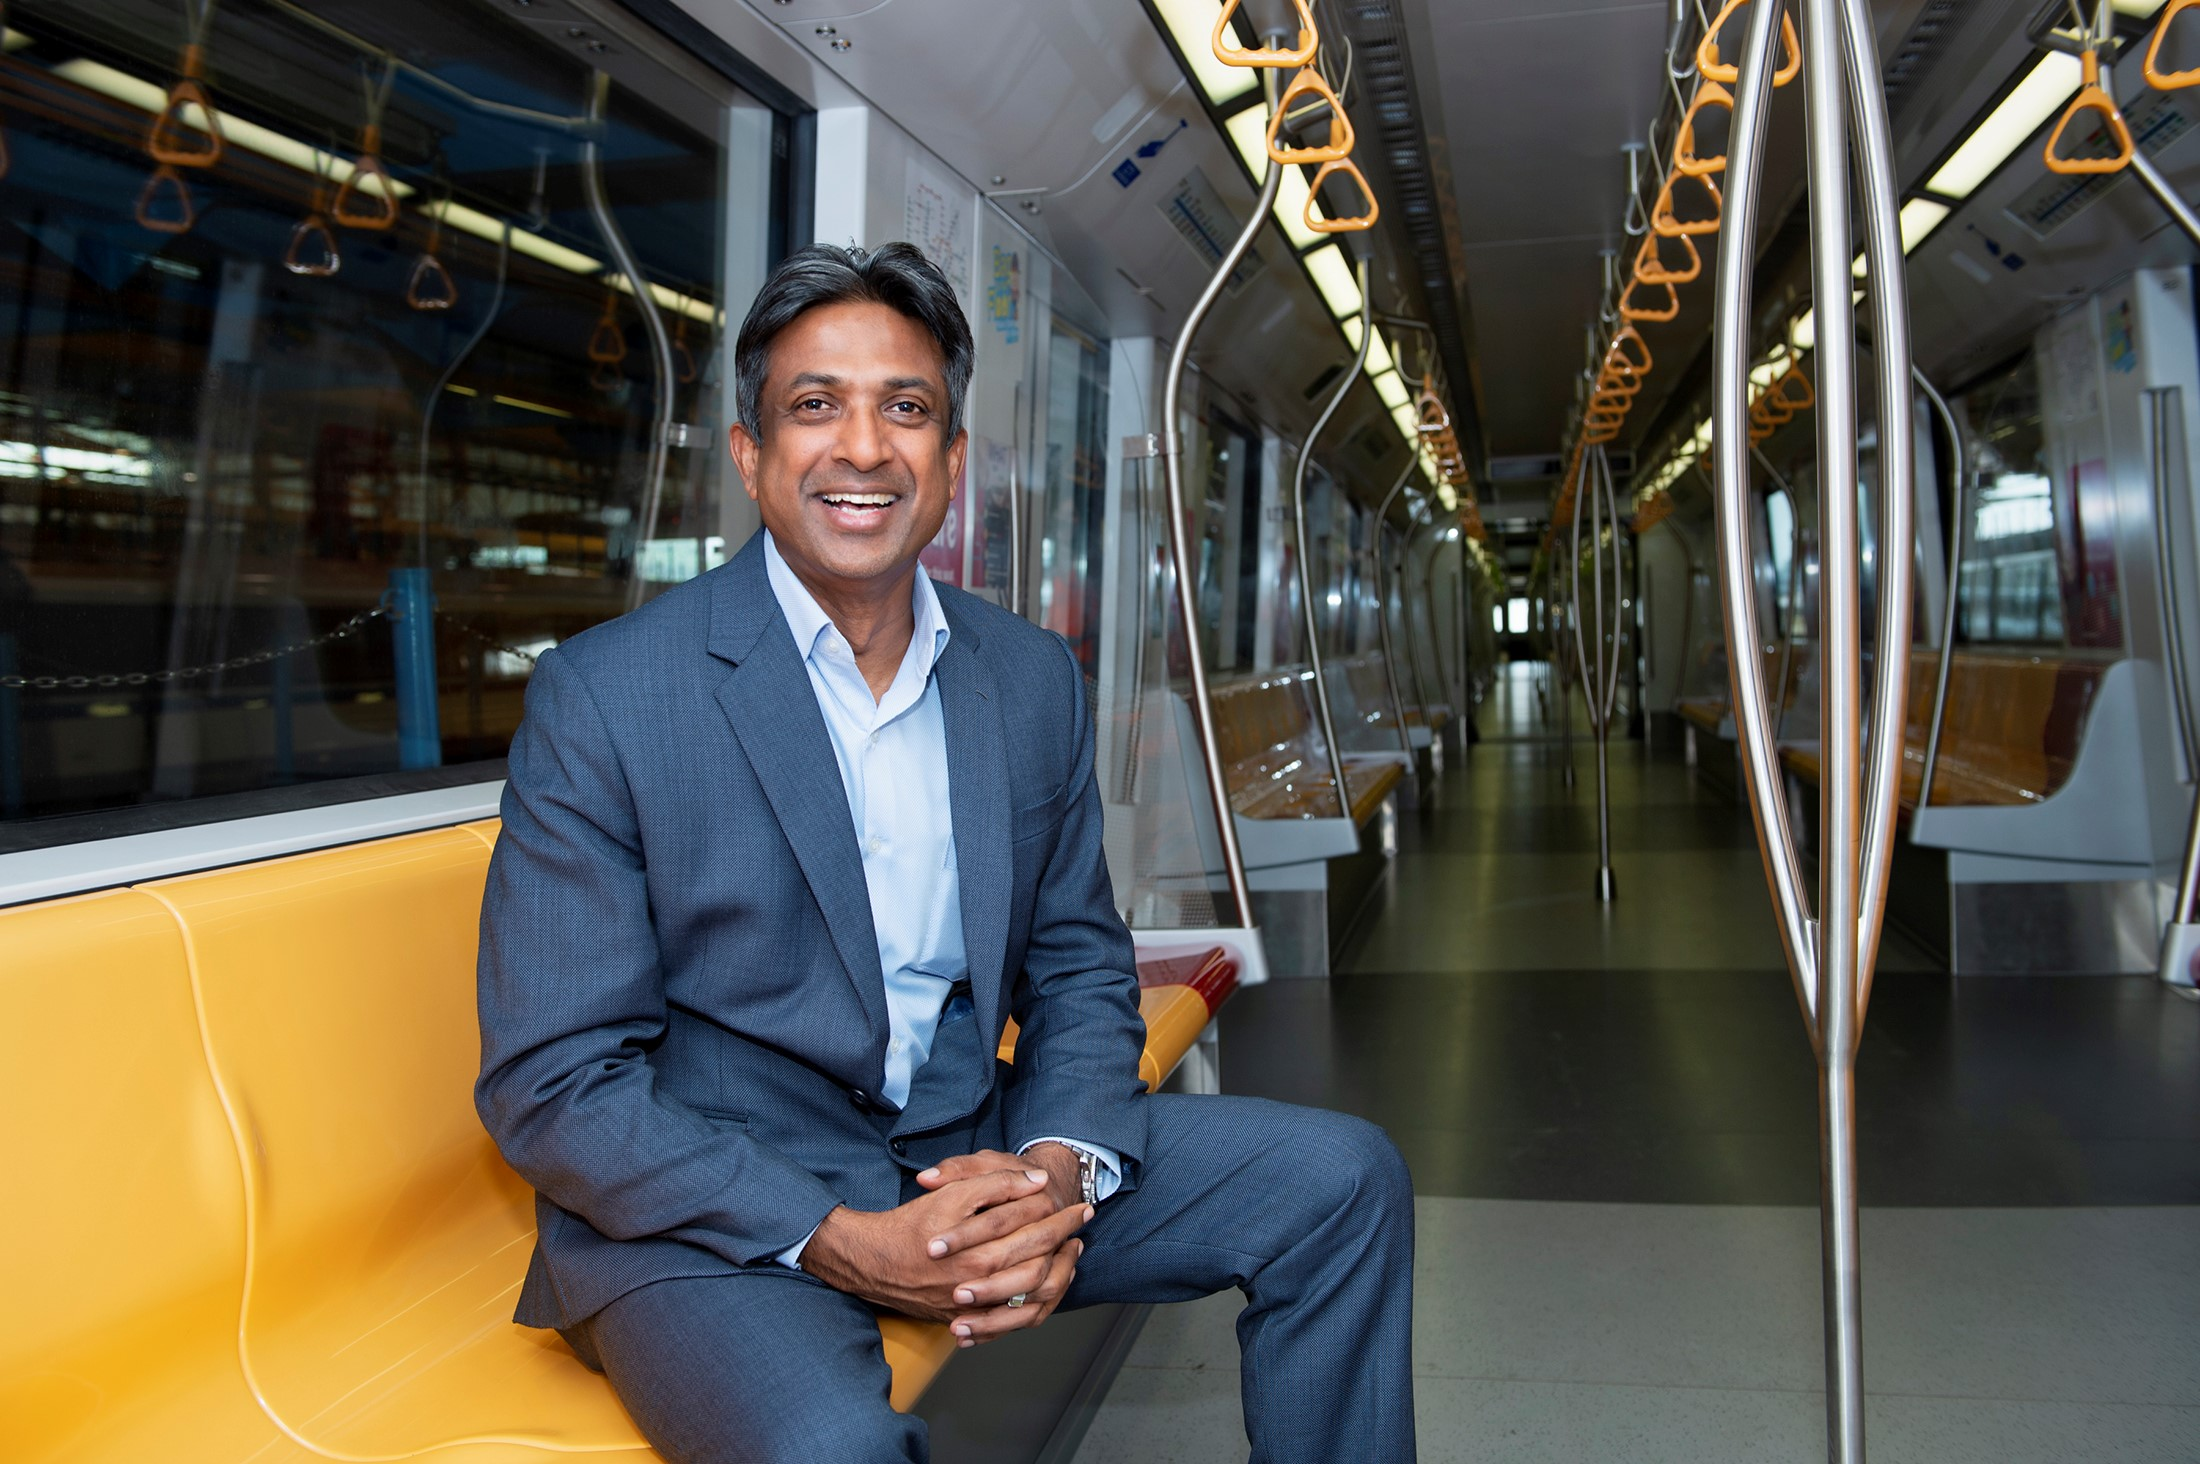 Bombardier delivers rail services solutions for success in Southeast Asia